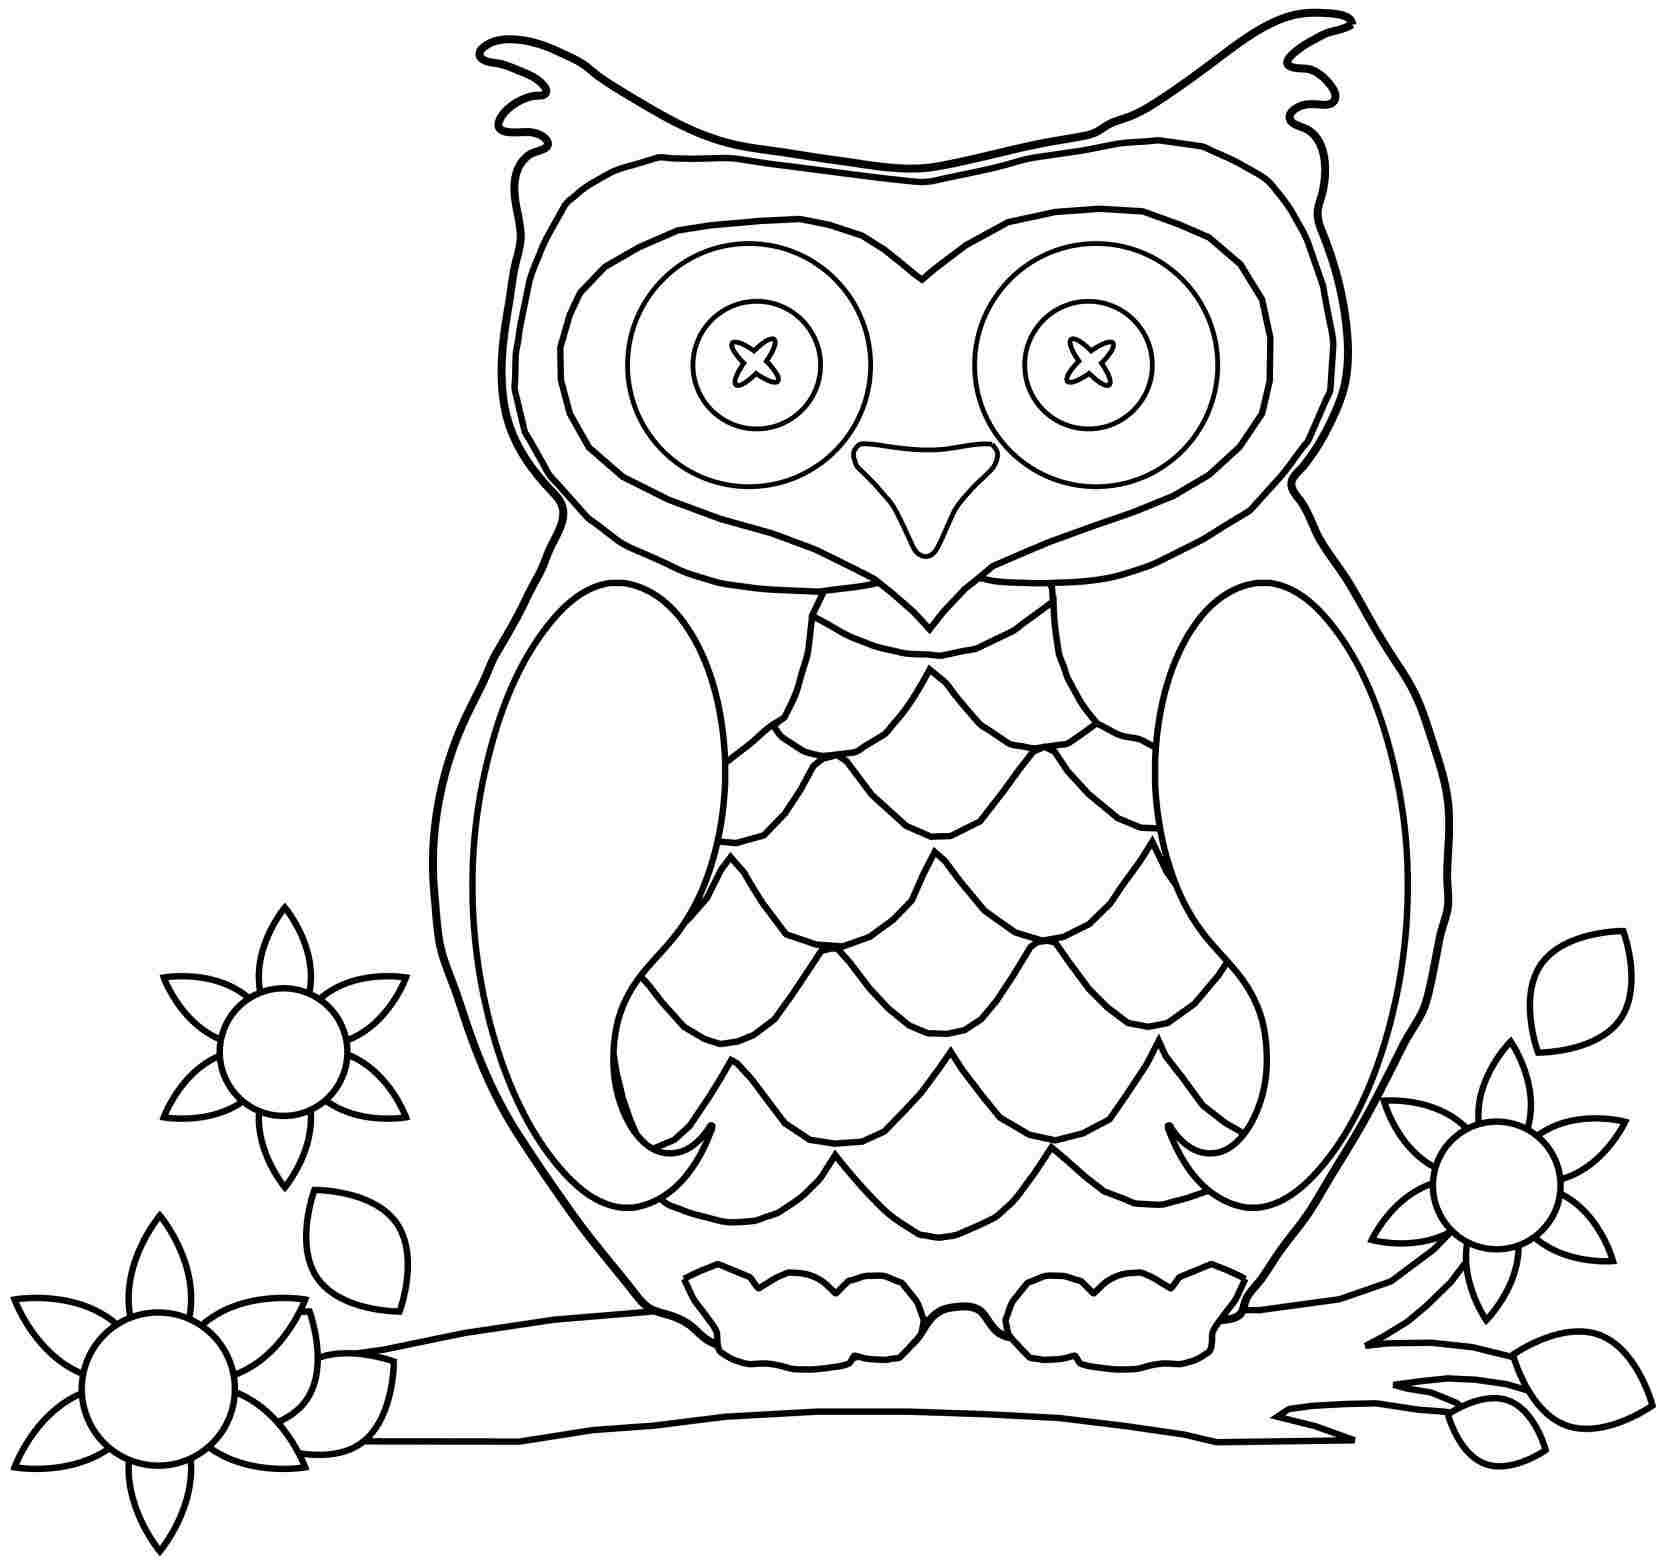 printable owl picture owl printable coloring pages - Owl Printable